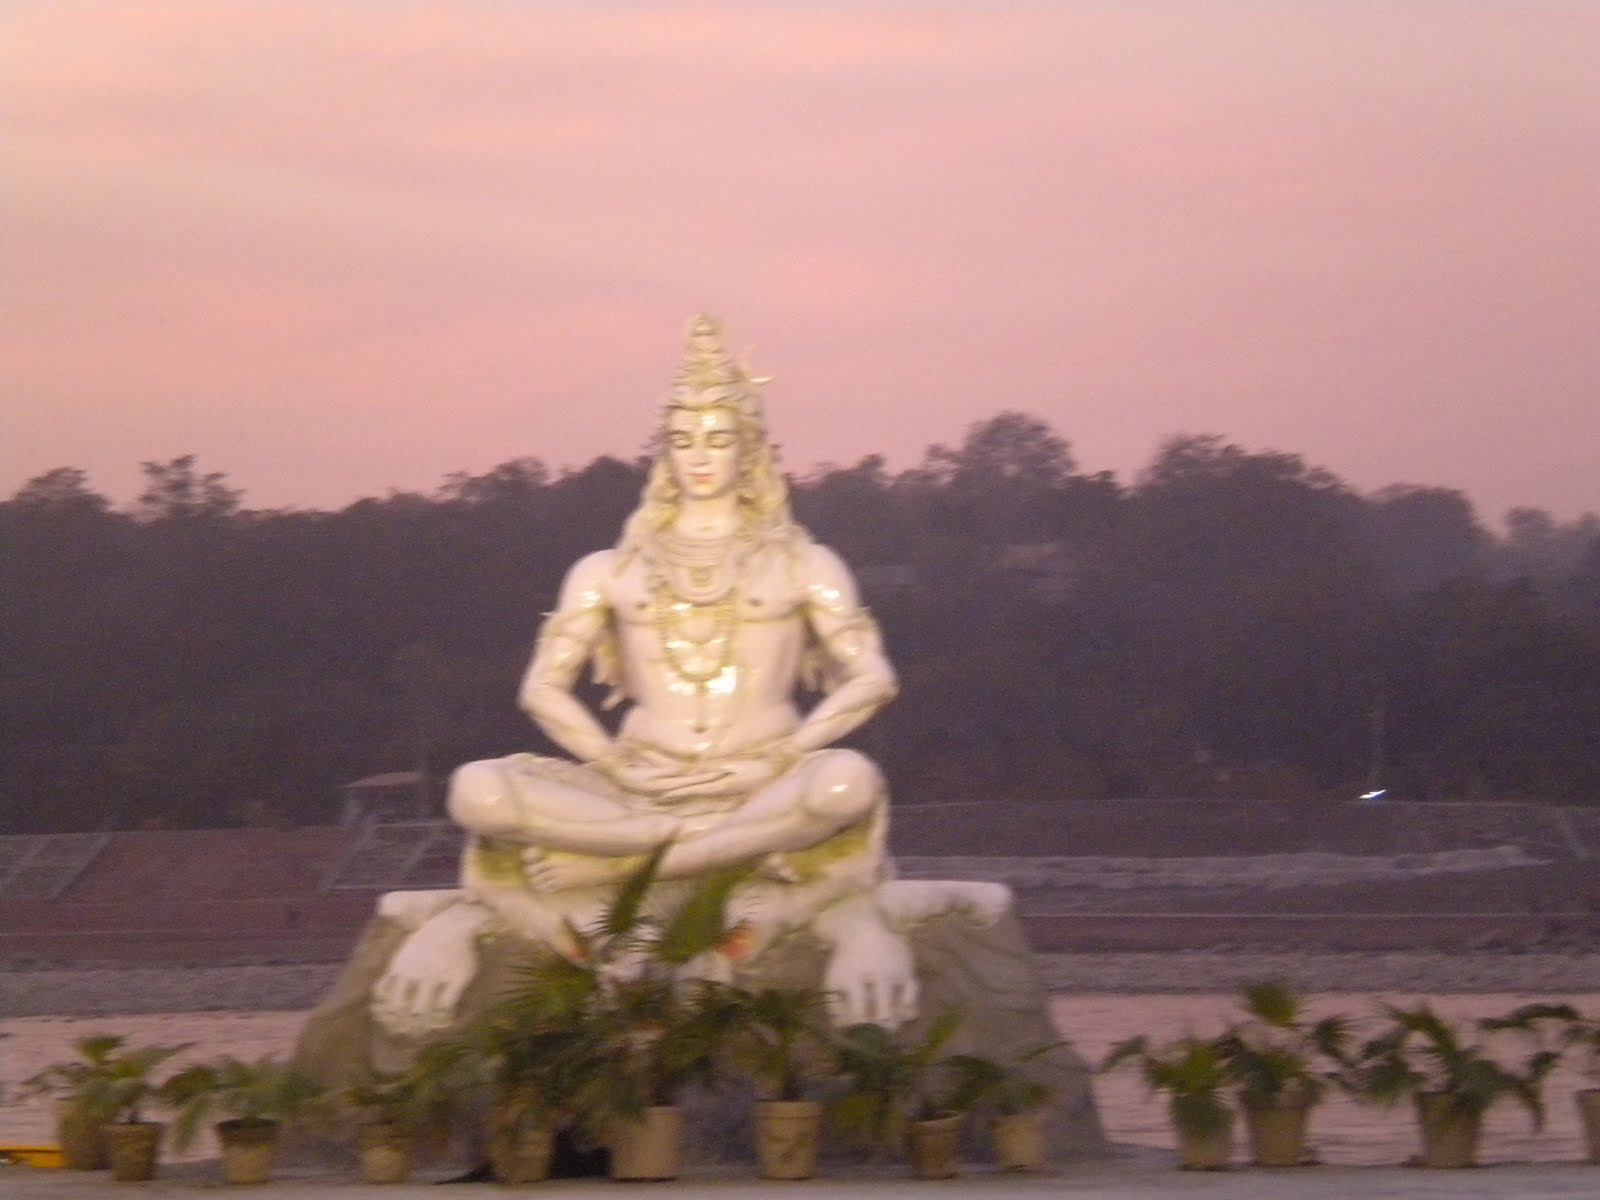 Yoga And Mantra Therapy The White Marble Statue Of Lord